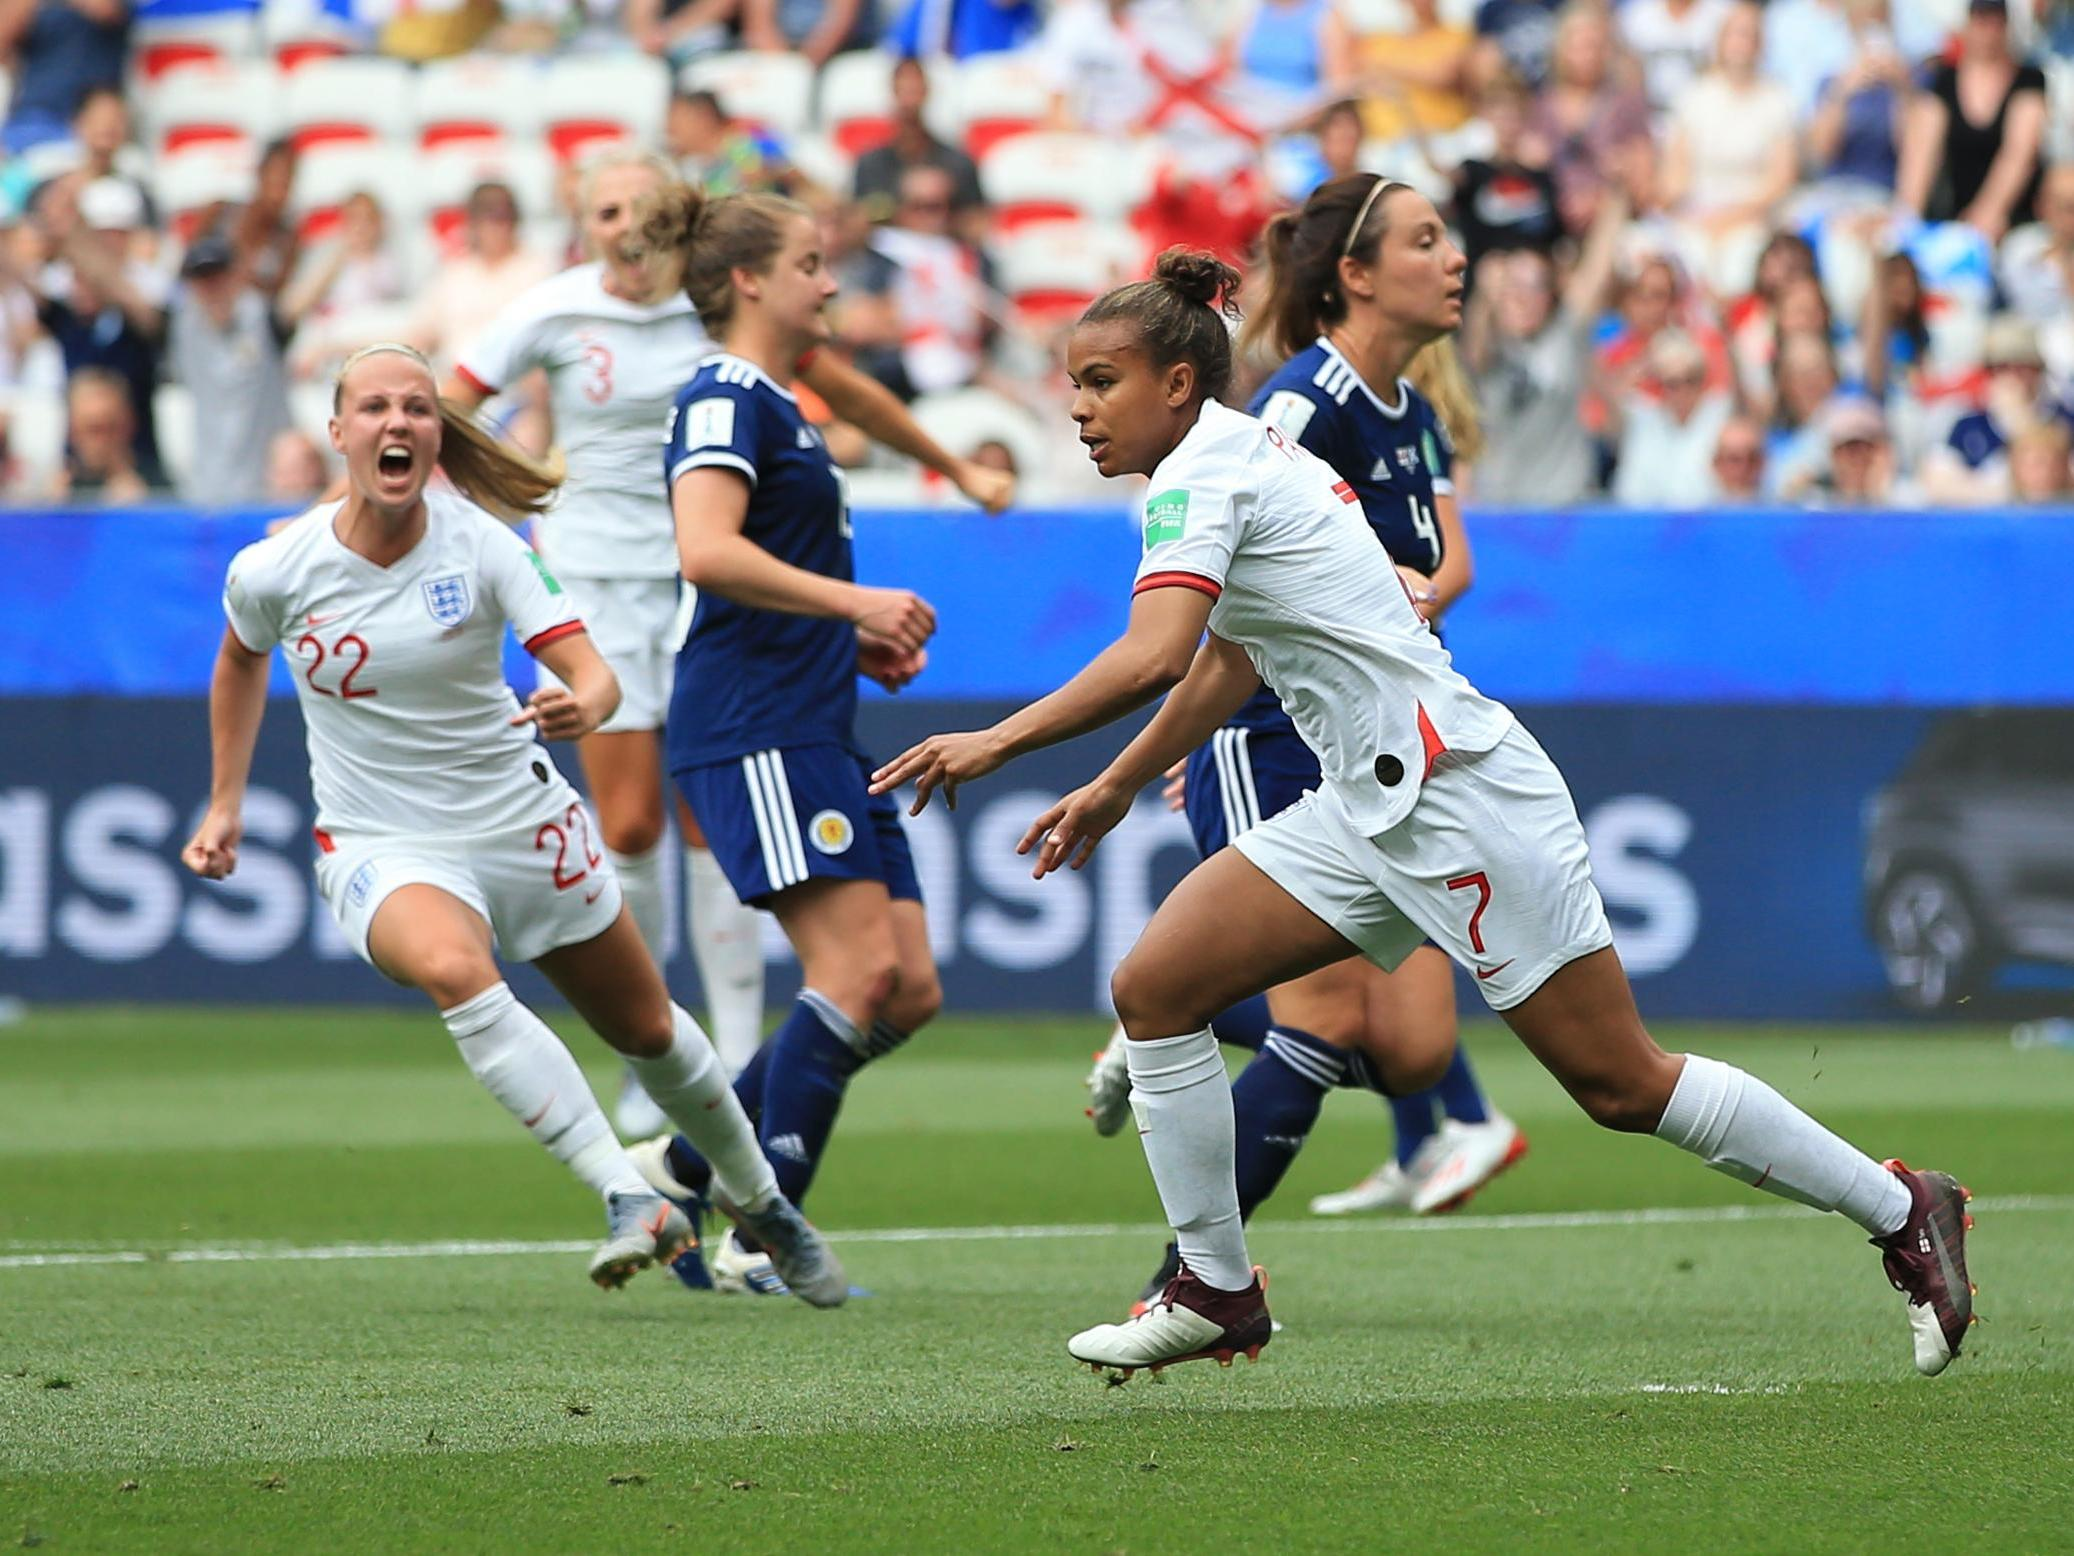 FIFA Women's World Cup 2019 England vs Argentina, Streaming, Preview, Prediction, Result